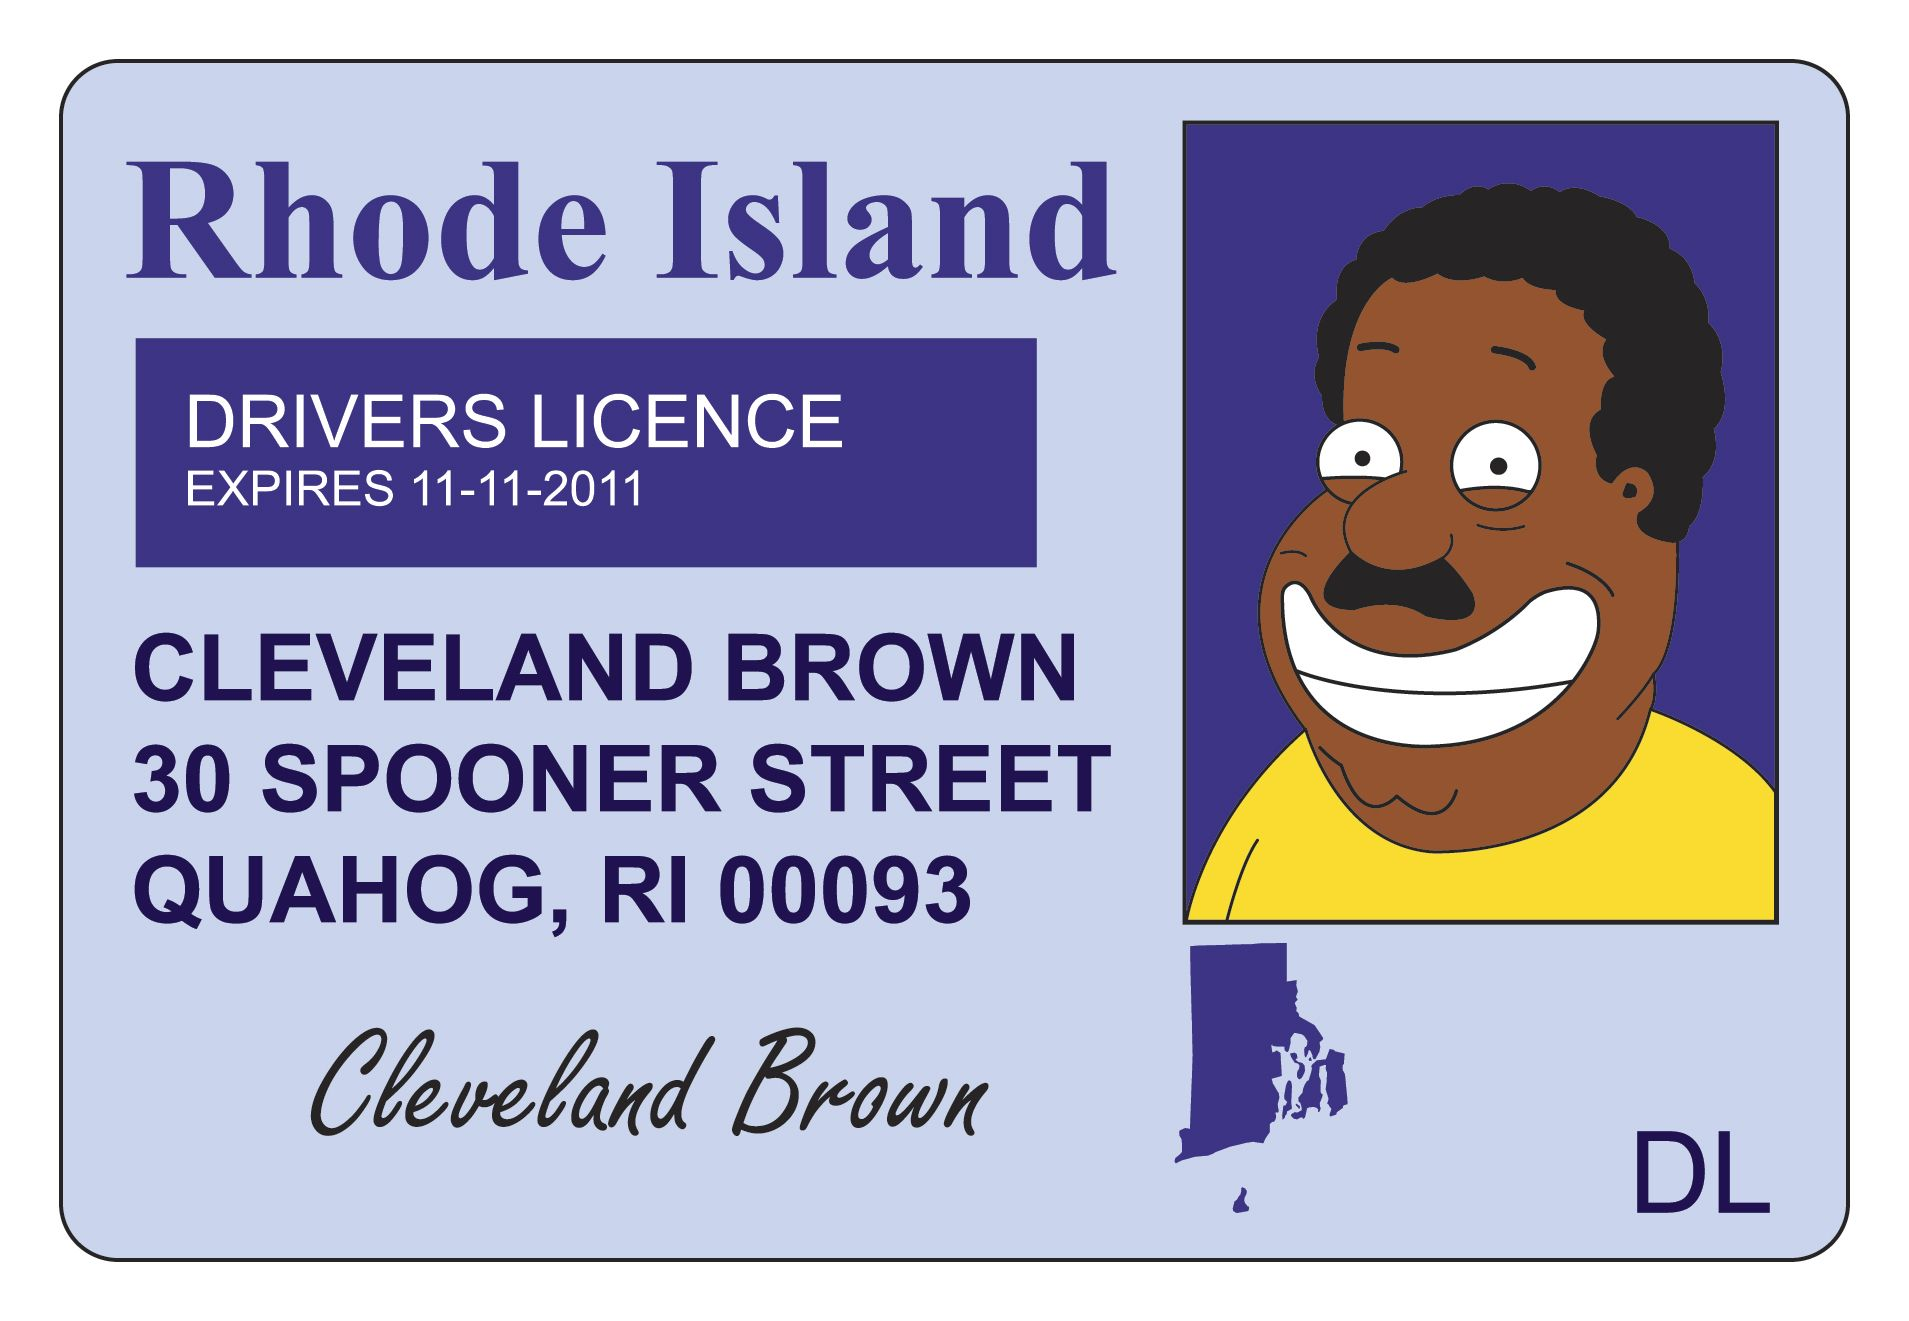 Drivers license every driver must have one with them